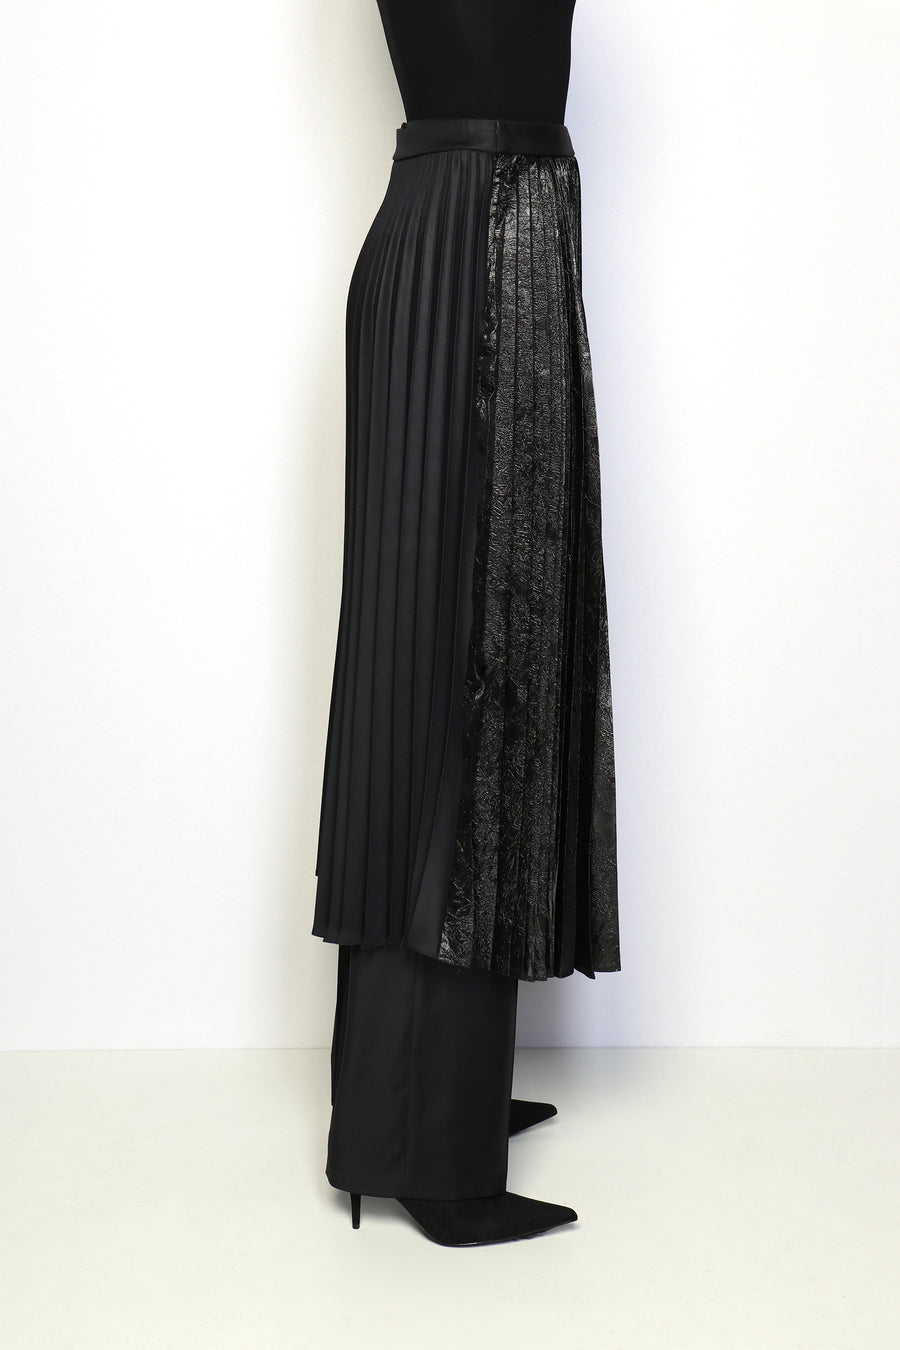 BLACK METALIC PLEATED SKIRT